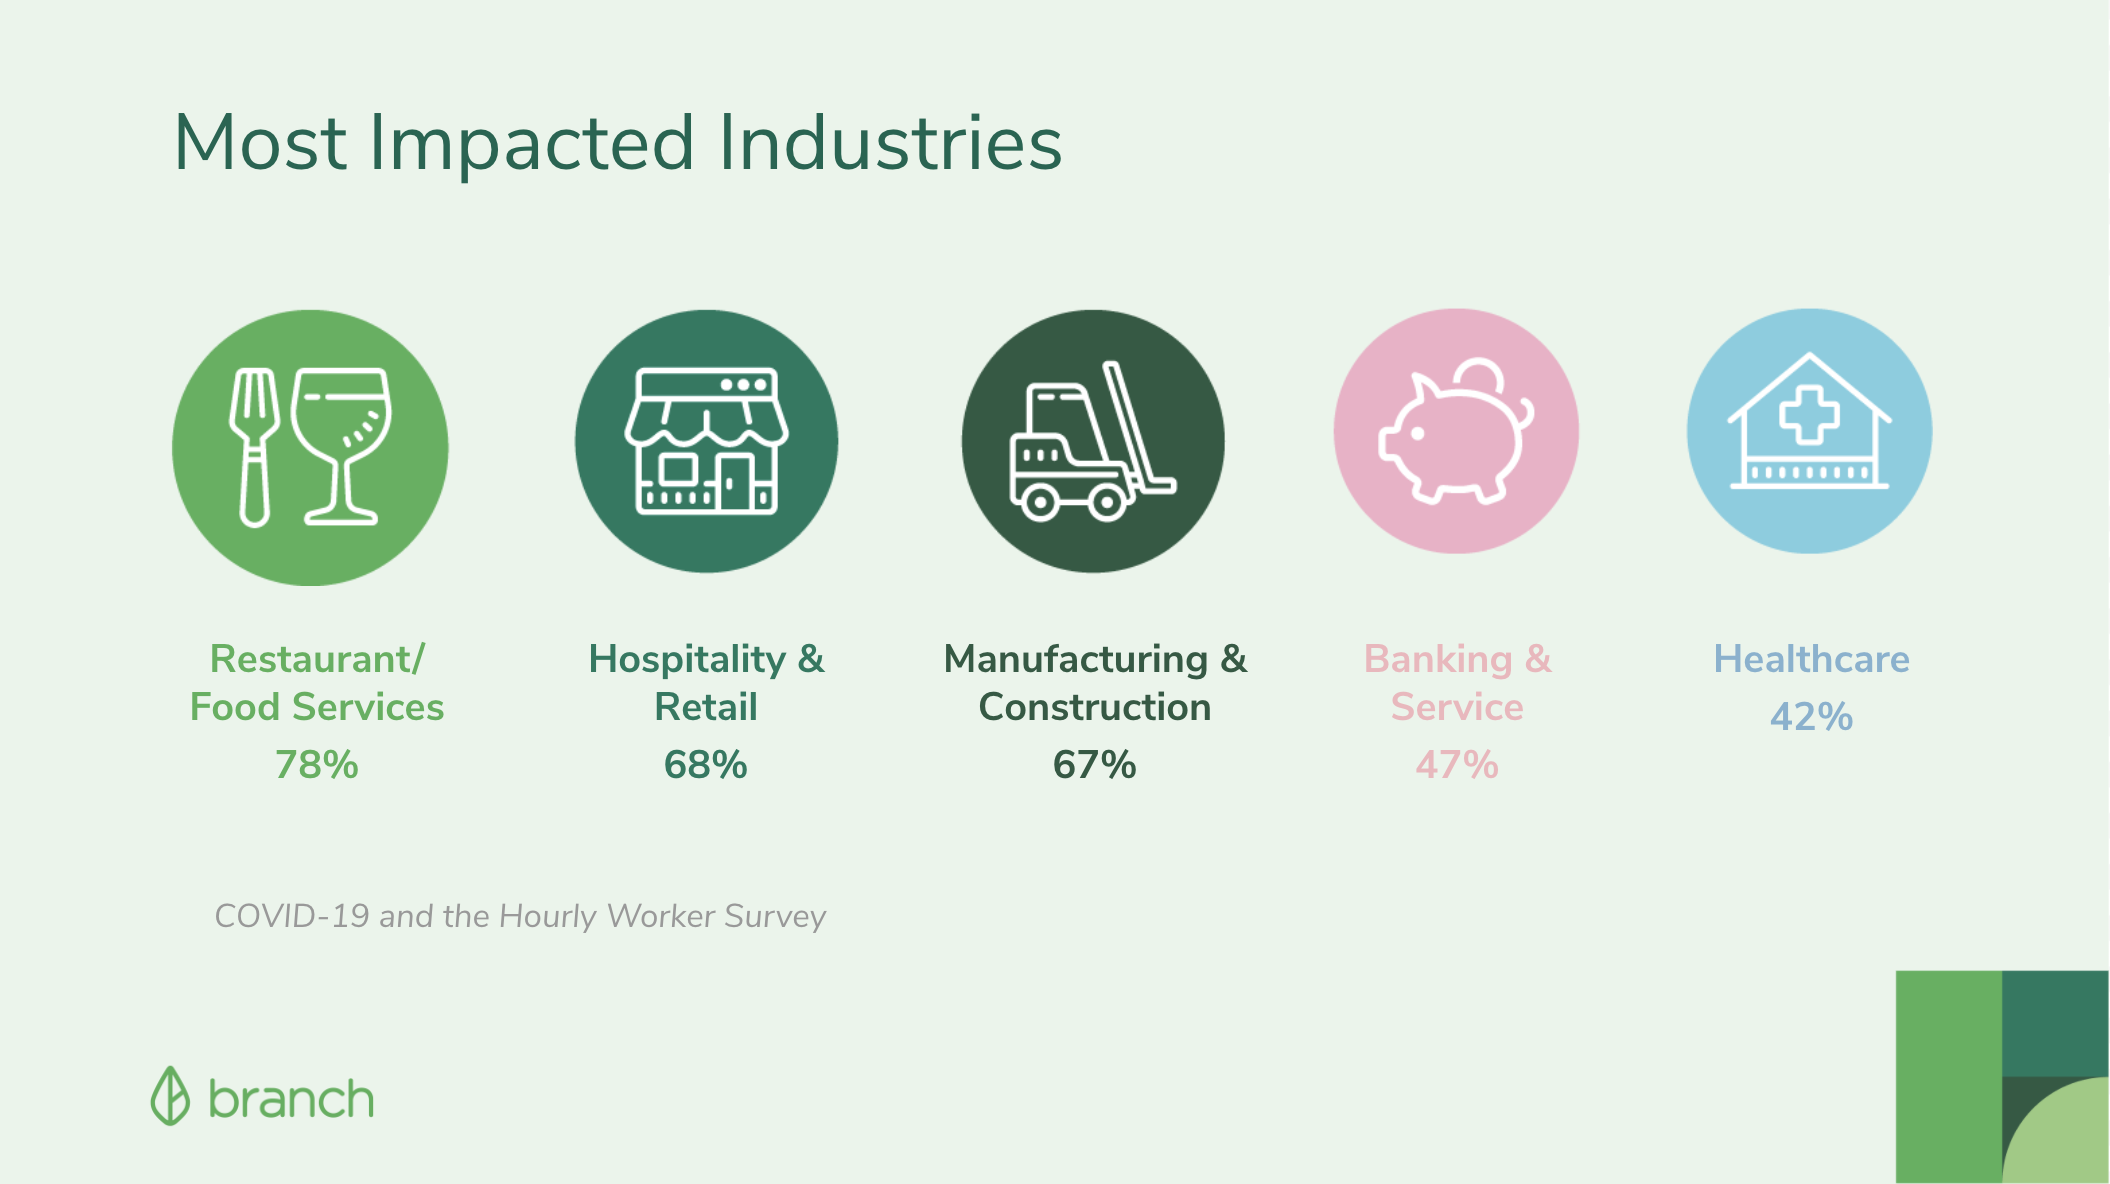 The Most Impacted Industries by COVID-19